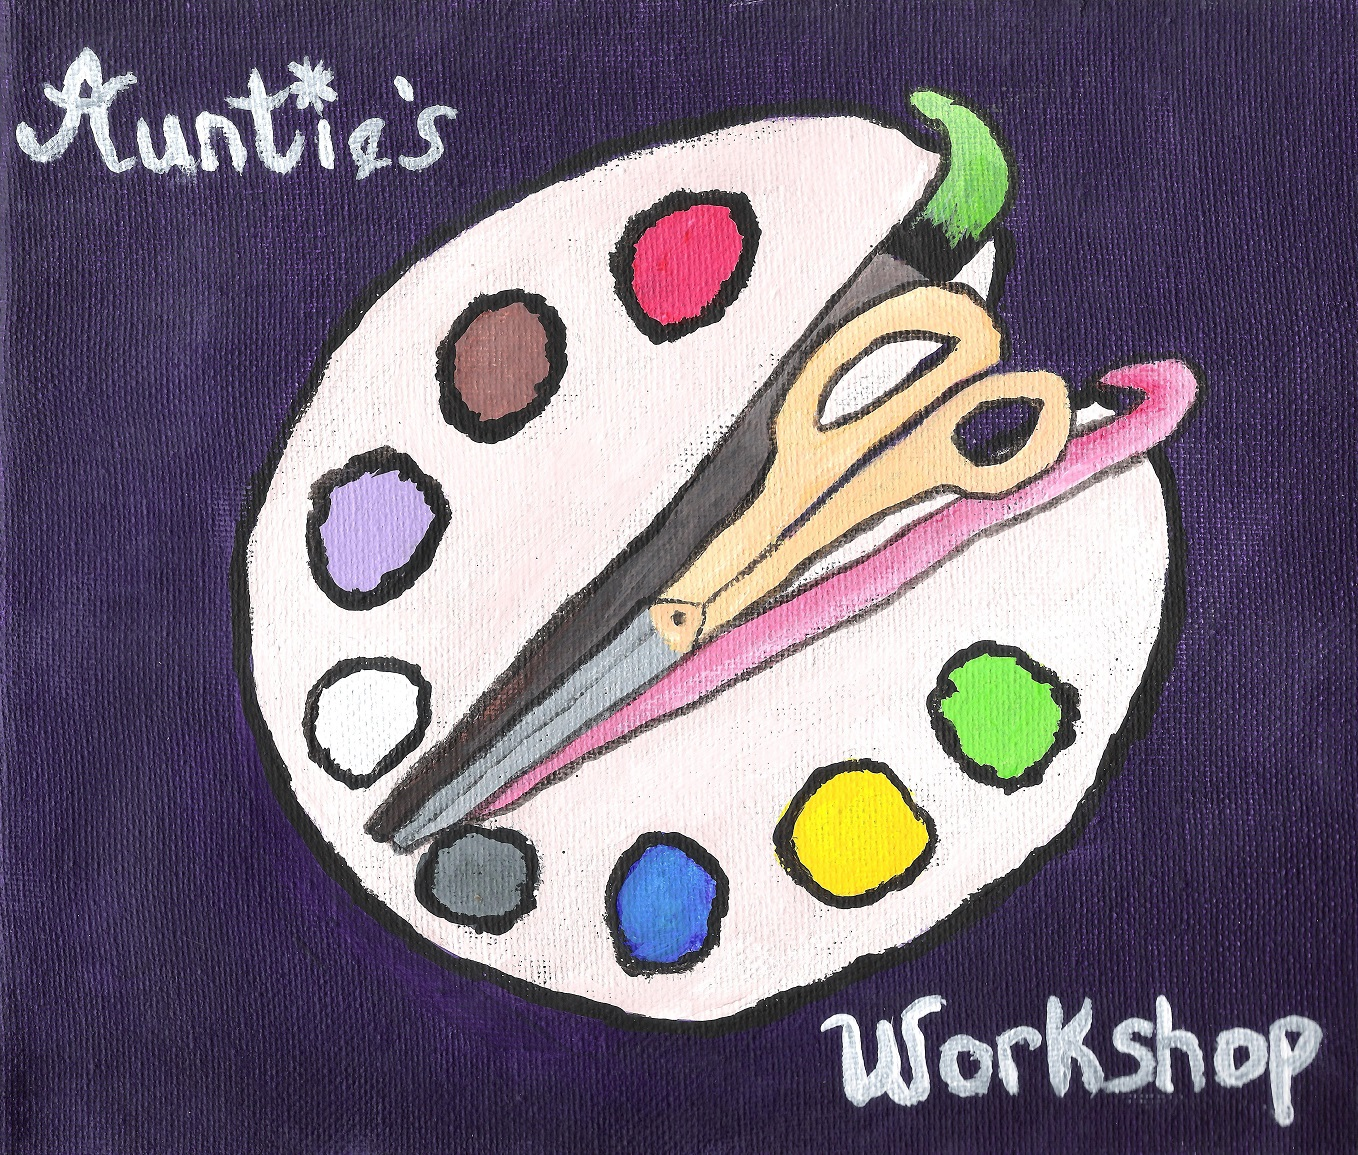 Auntie's Workshop